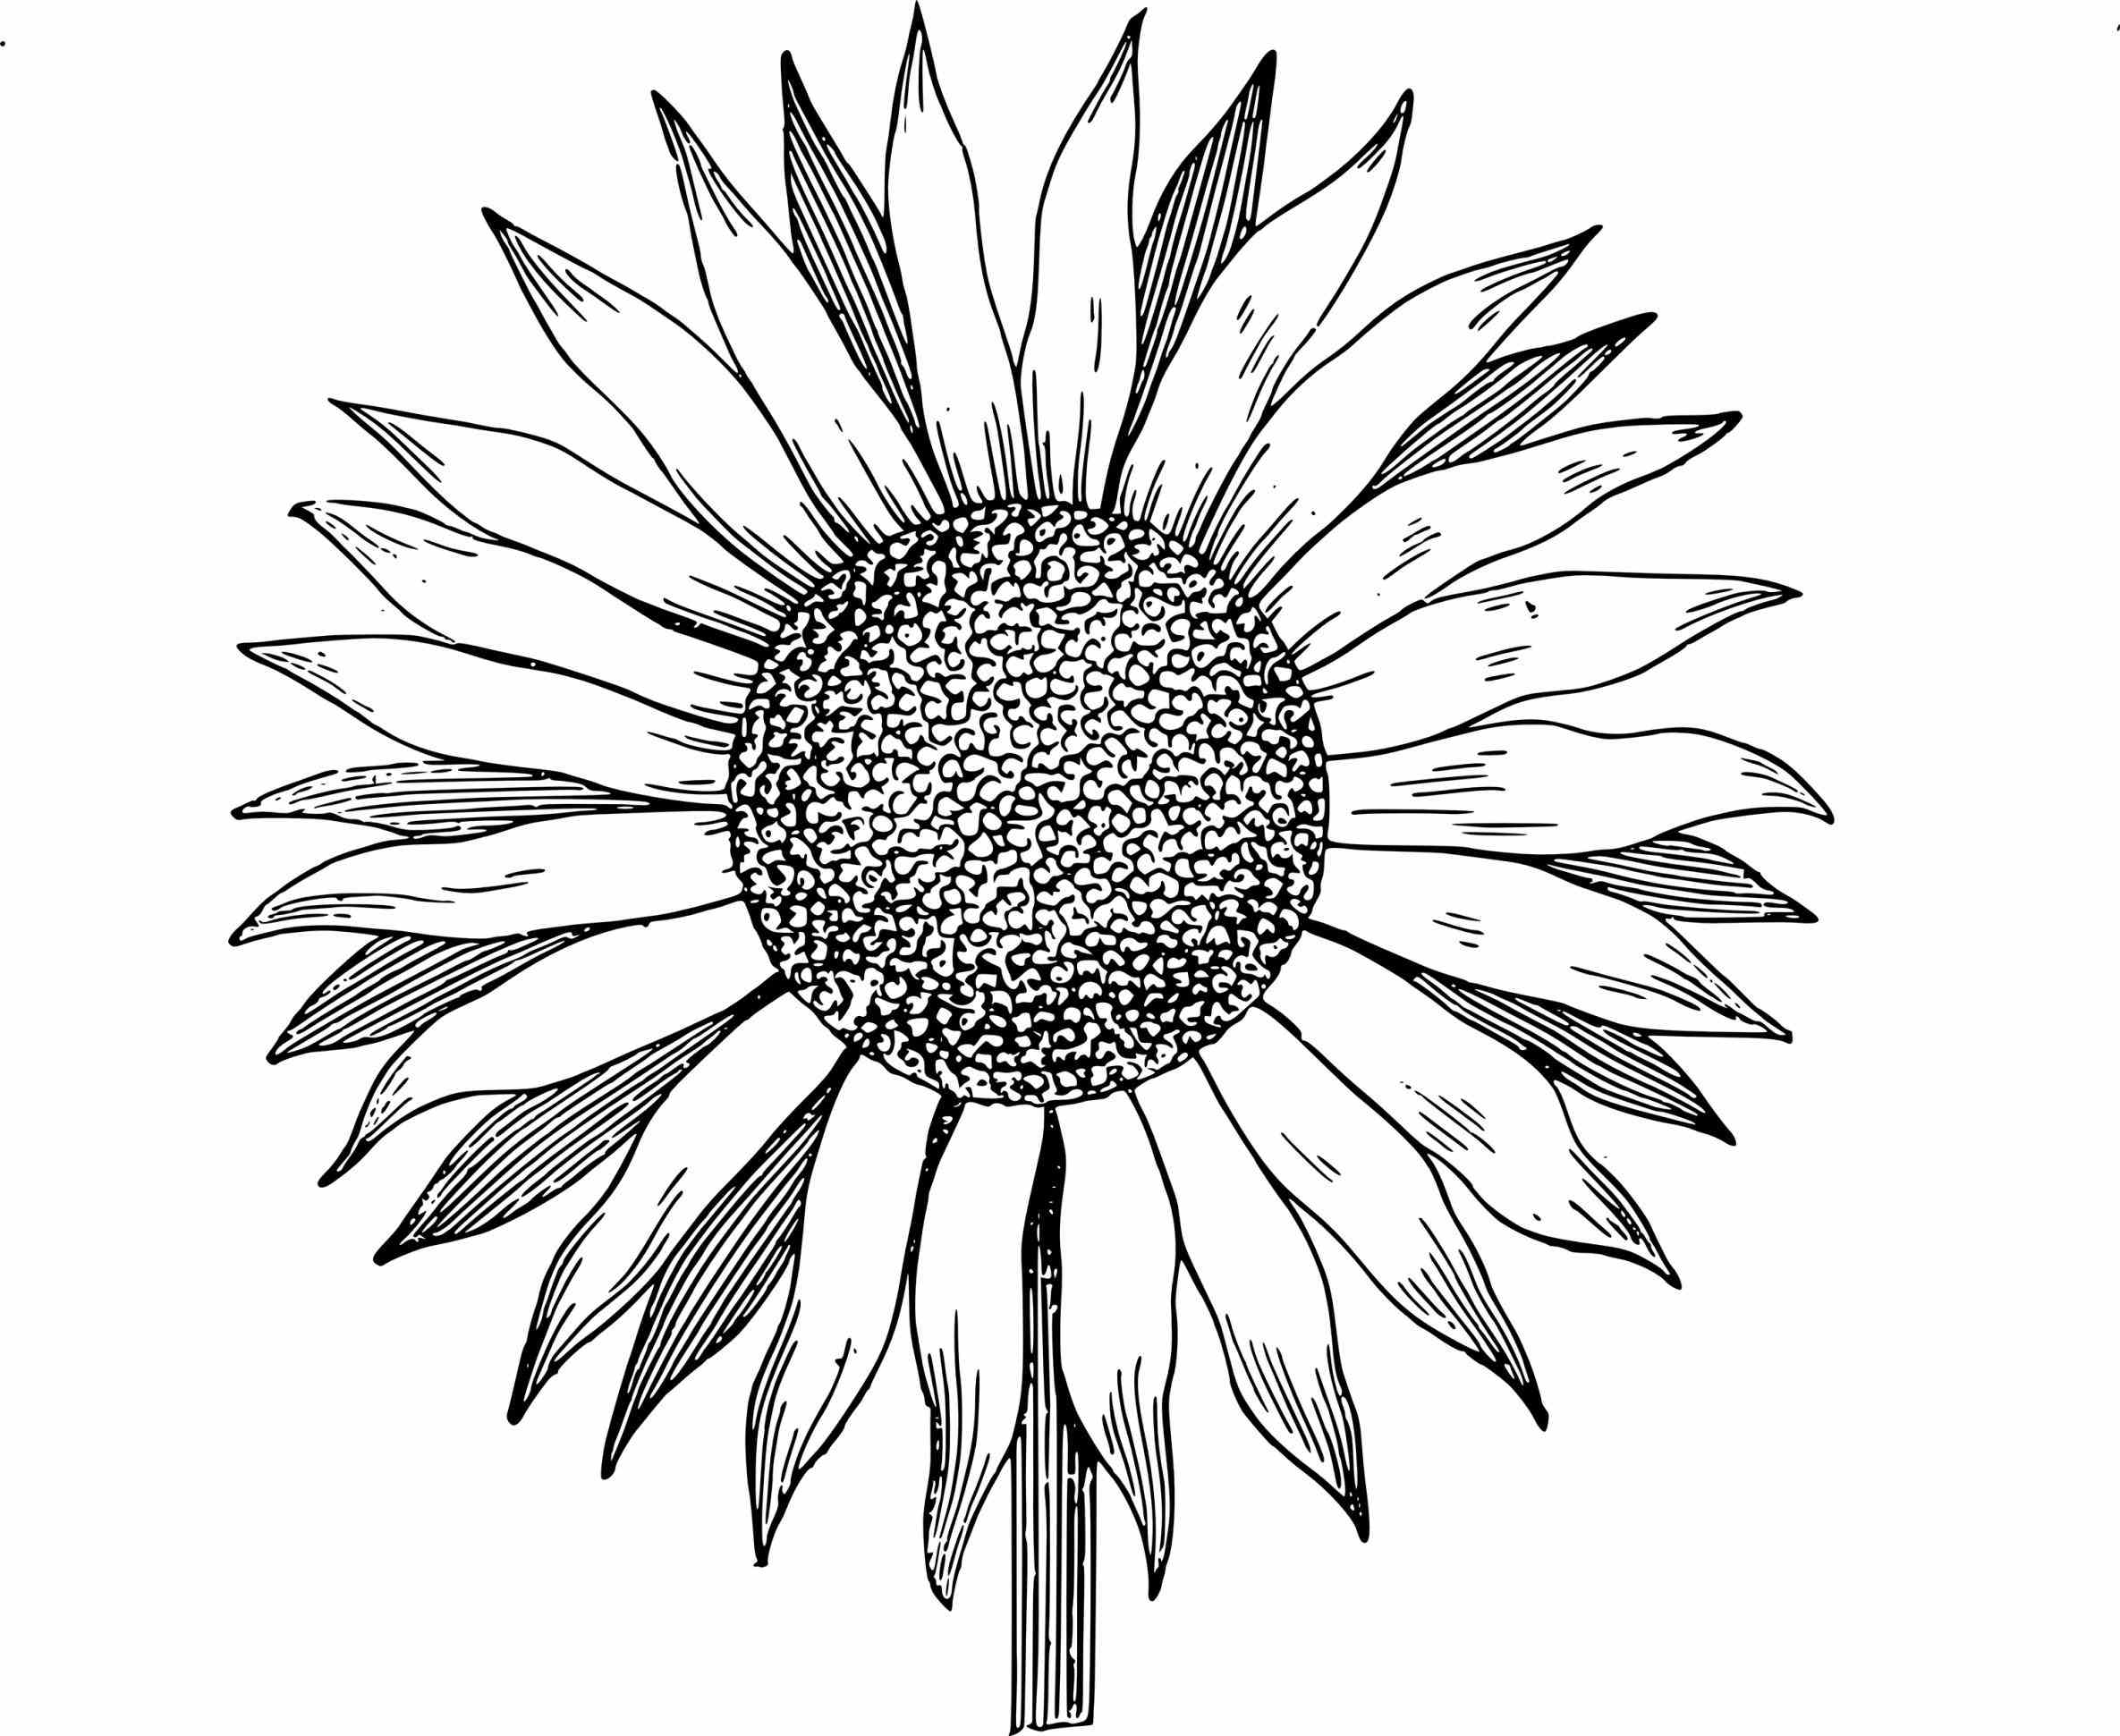 2370x1941 simple sunflower drawing and sunflower drawing simple sunflower